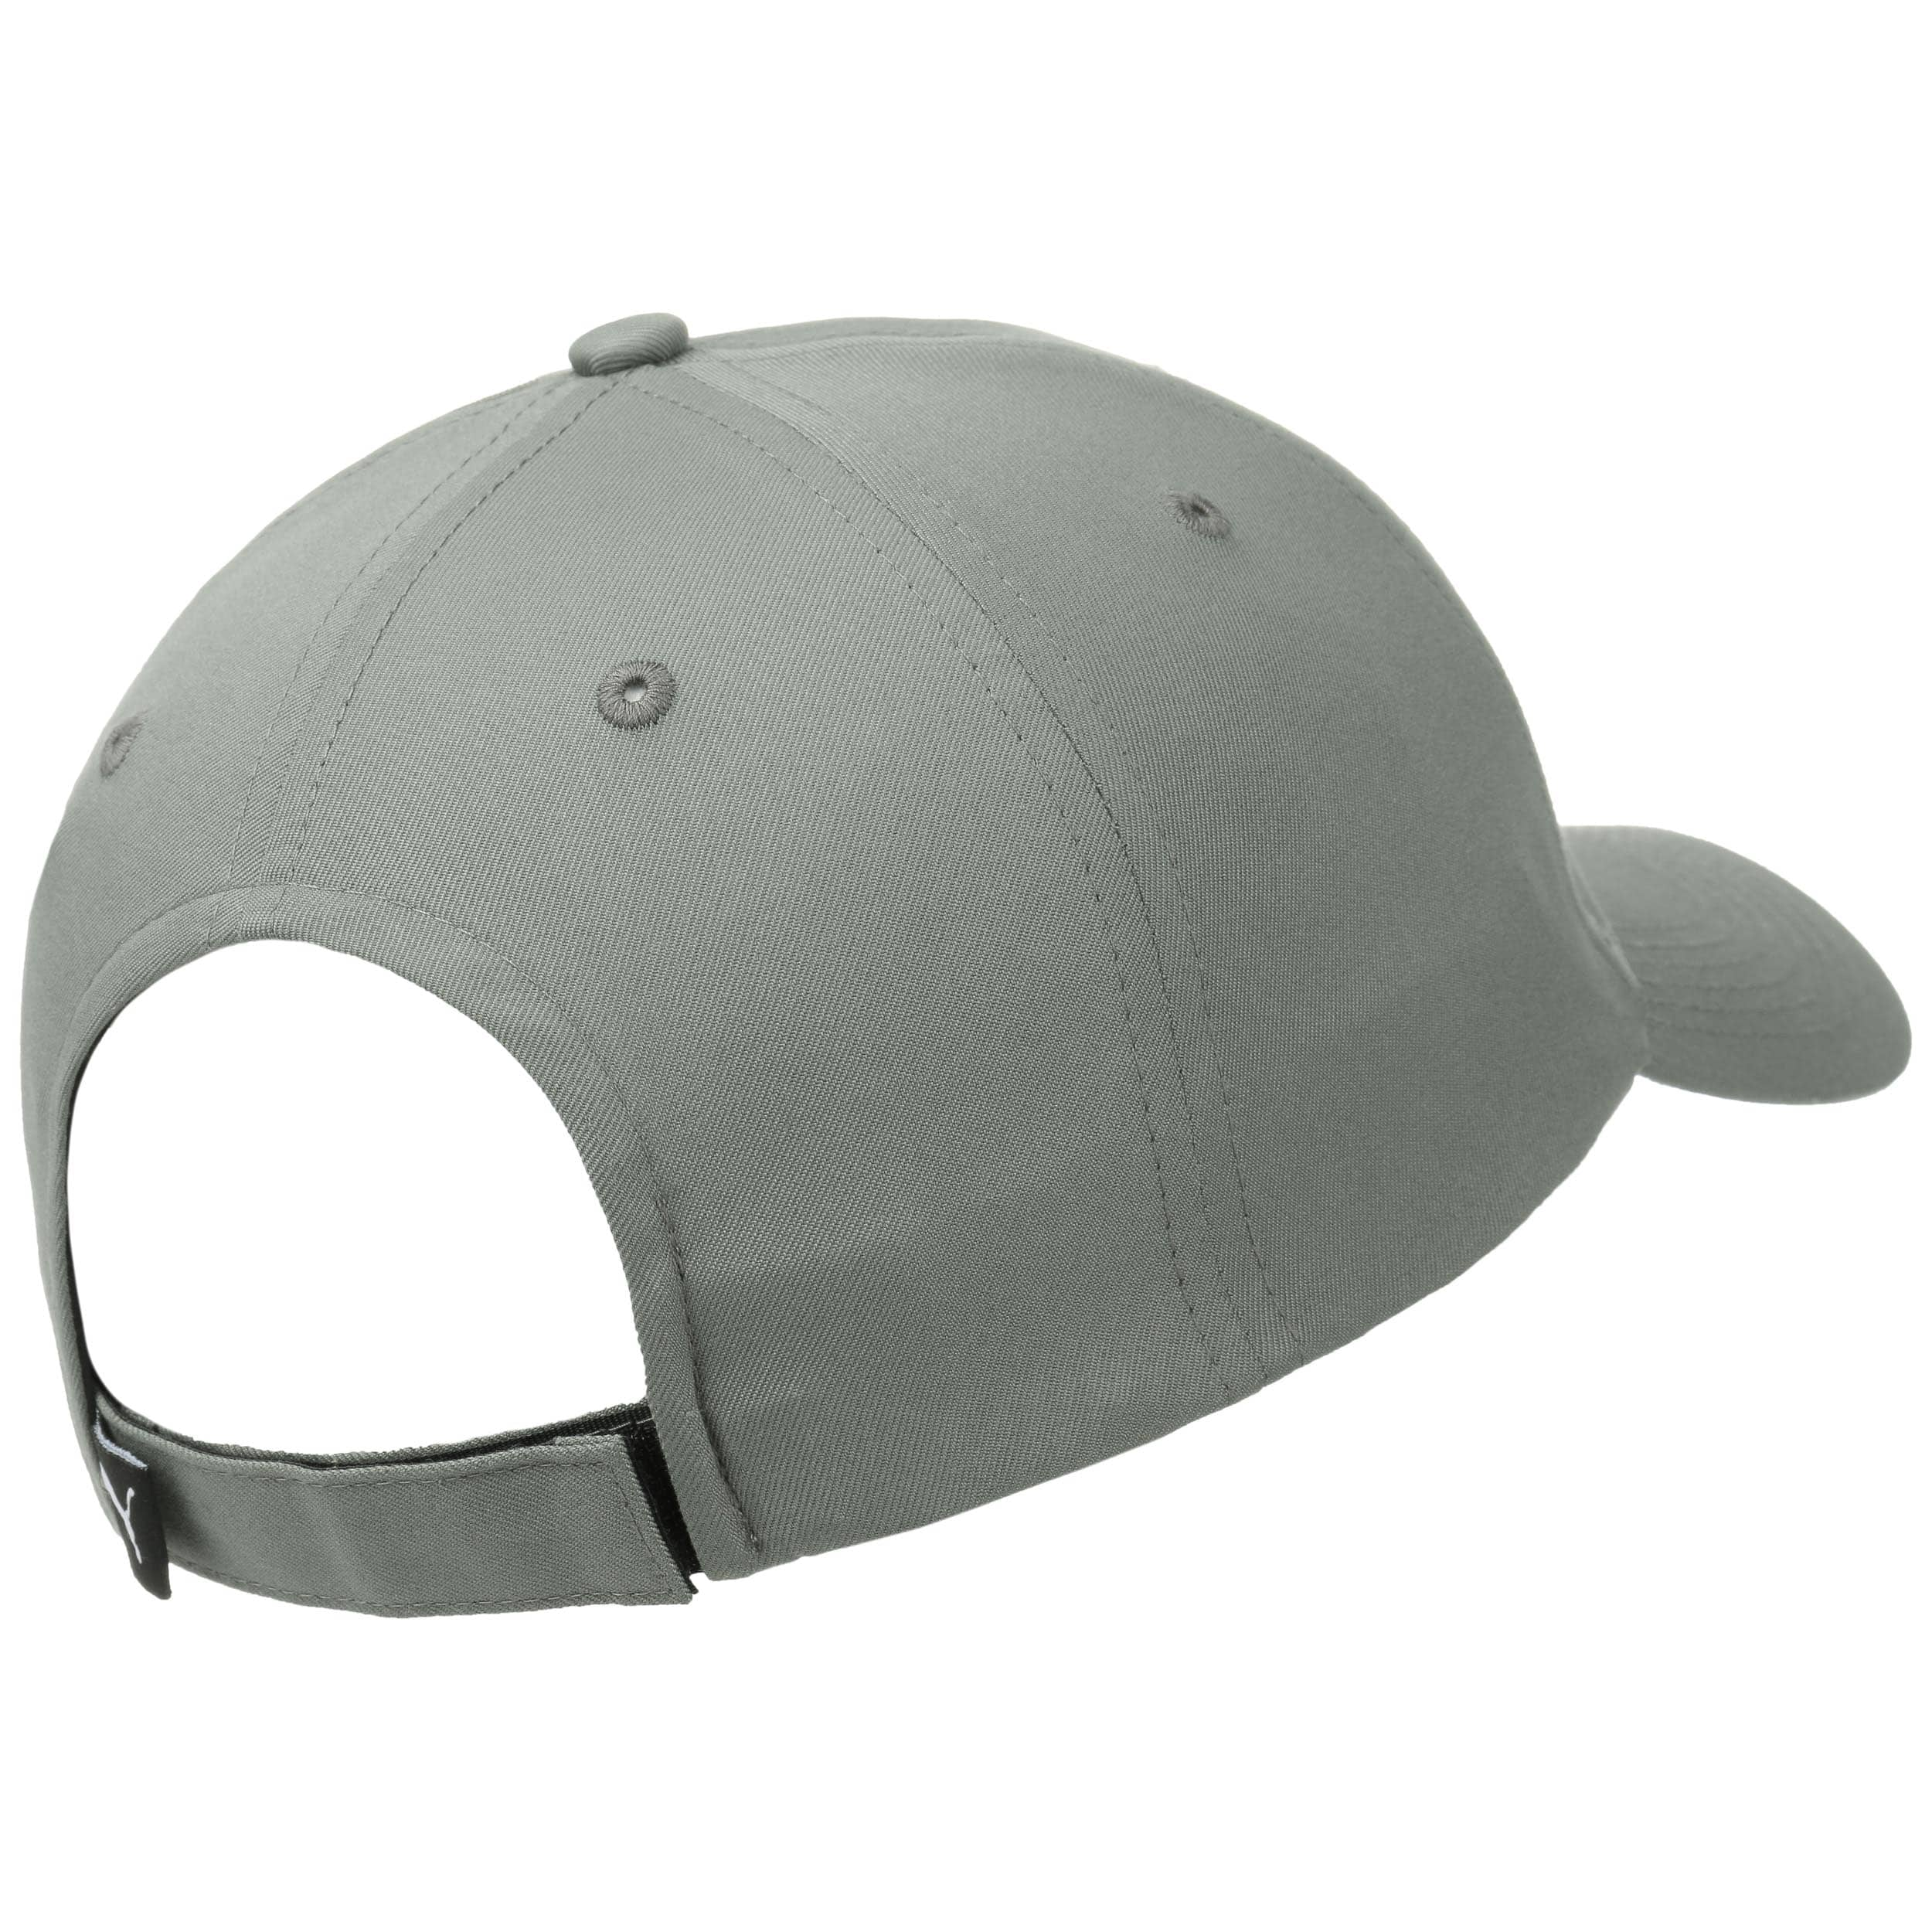 1ec680530c0 ... Metal Cat Cap by PUMA - grey 3 ...